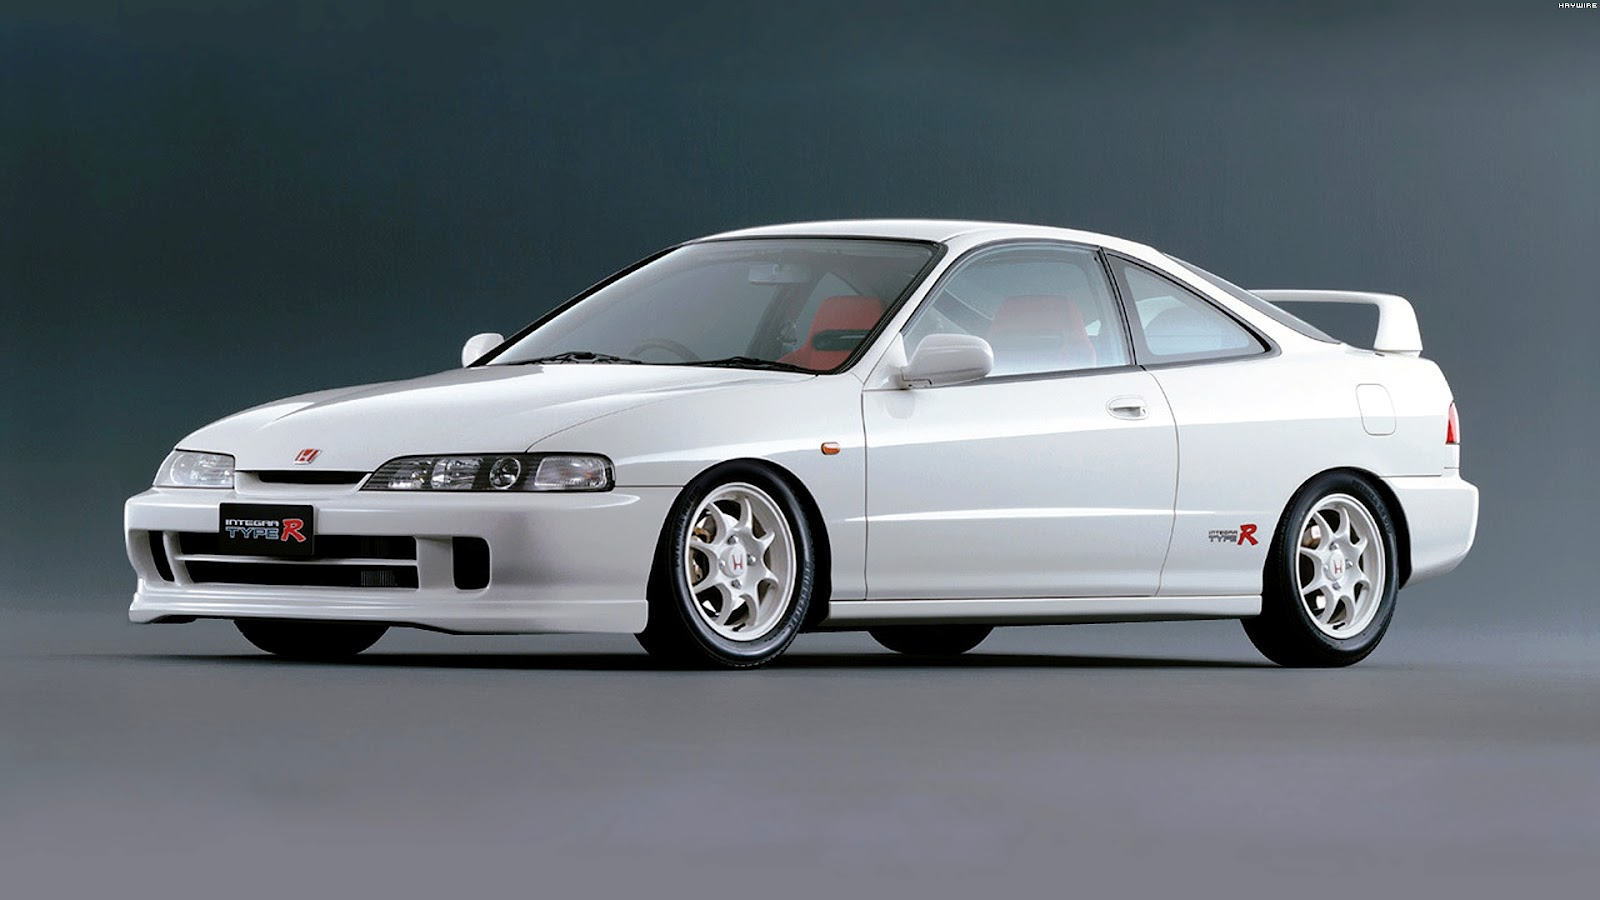 Acura integra type r jdm slammed free download image about all car 2017 2018 best cars reviews